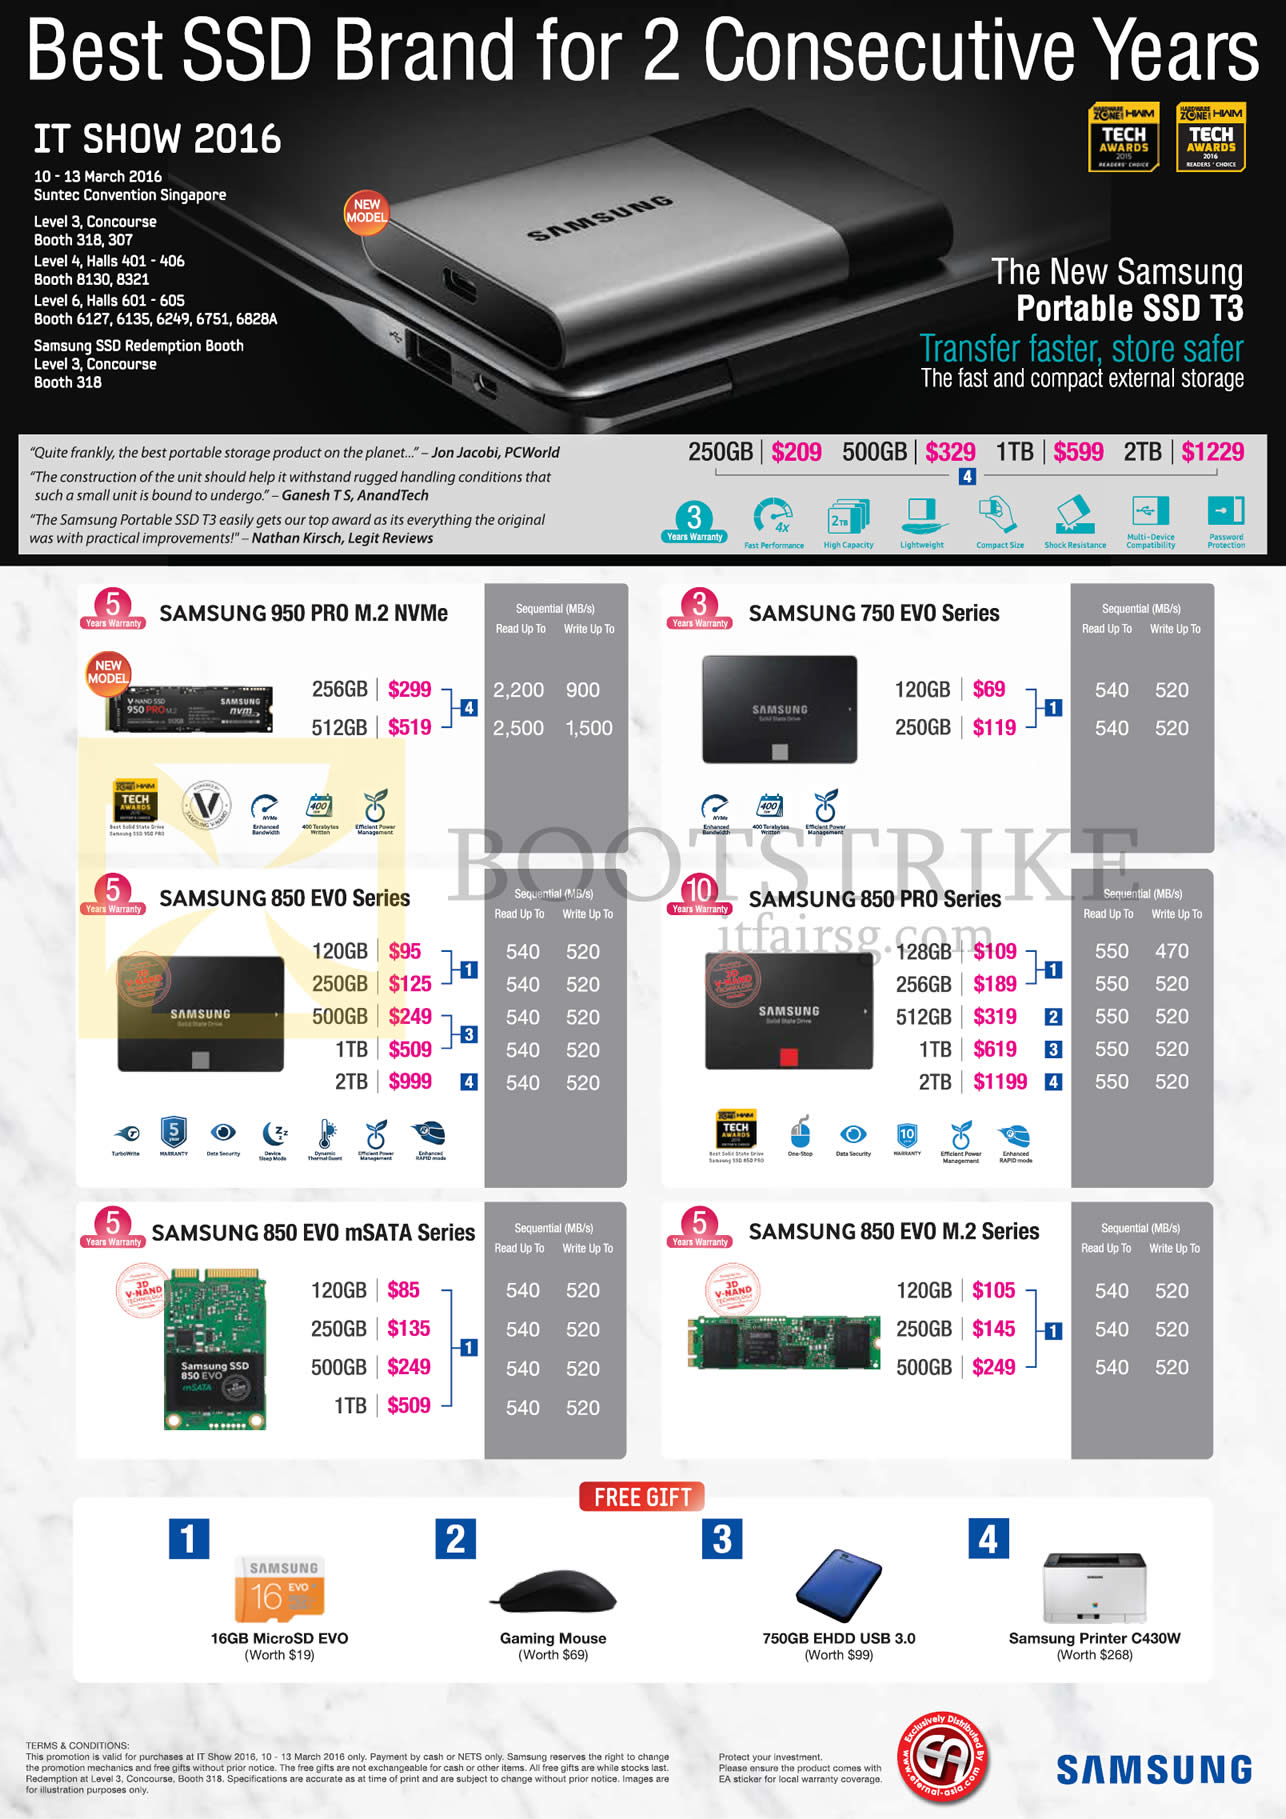 IT SHOW 2016 price list image brochure of Samsung SSDs 950 Pro M.2 NVMe. «